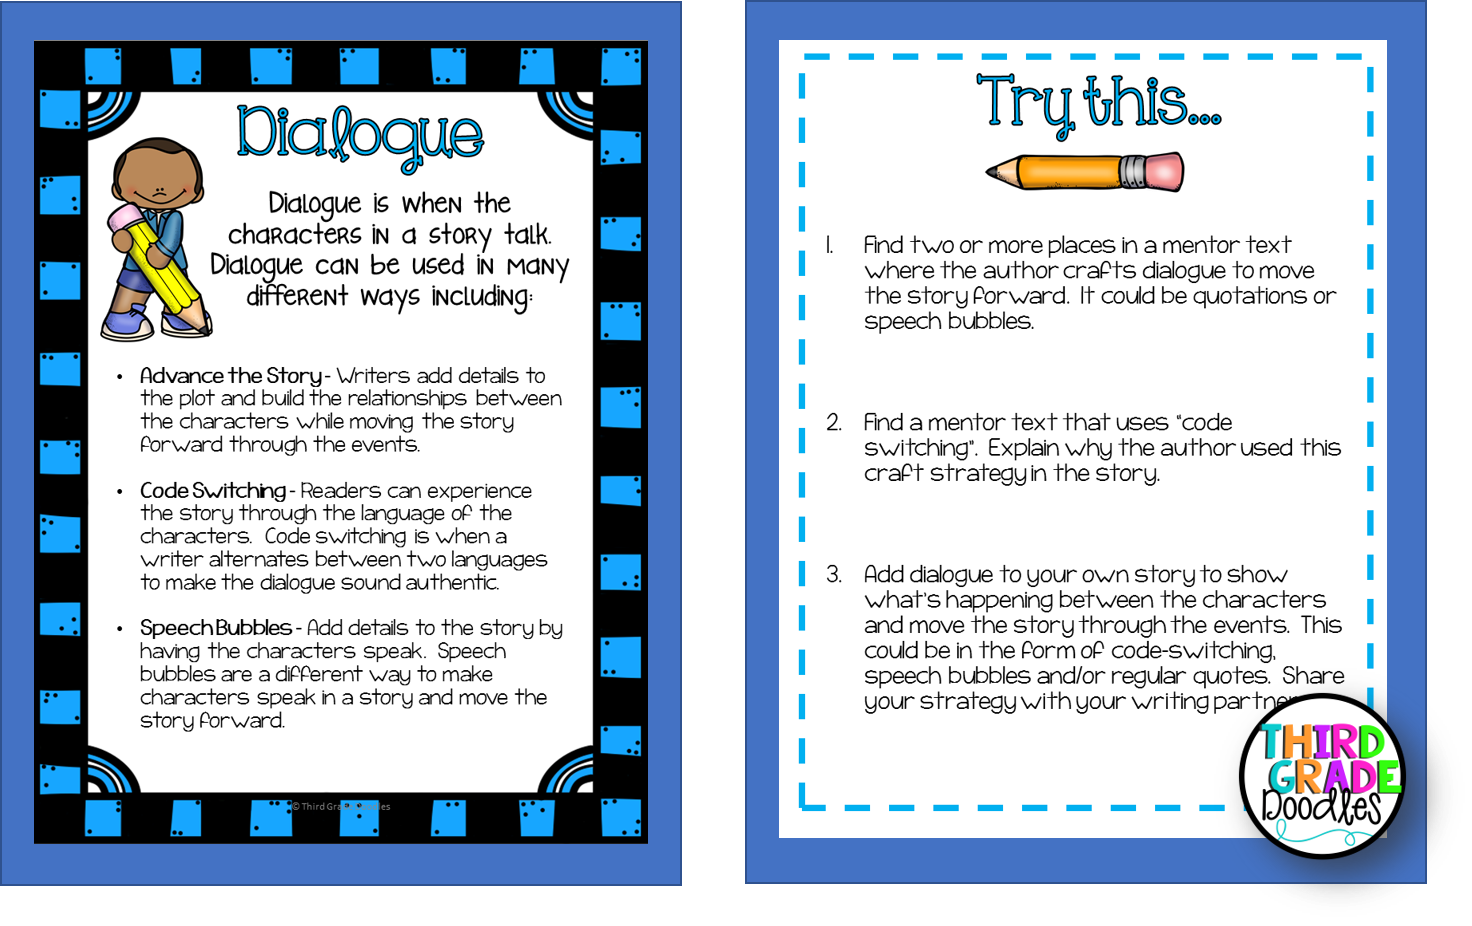 medium resolution of Teaching Personal Narrative Writing - Step By Step! - Third Grade Doodles